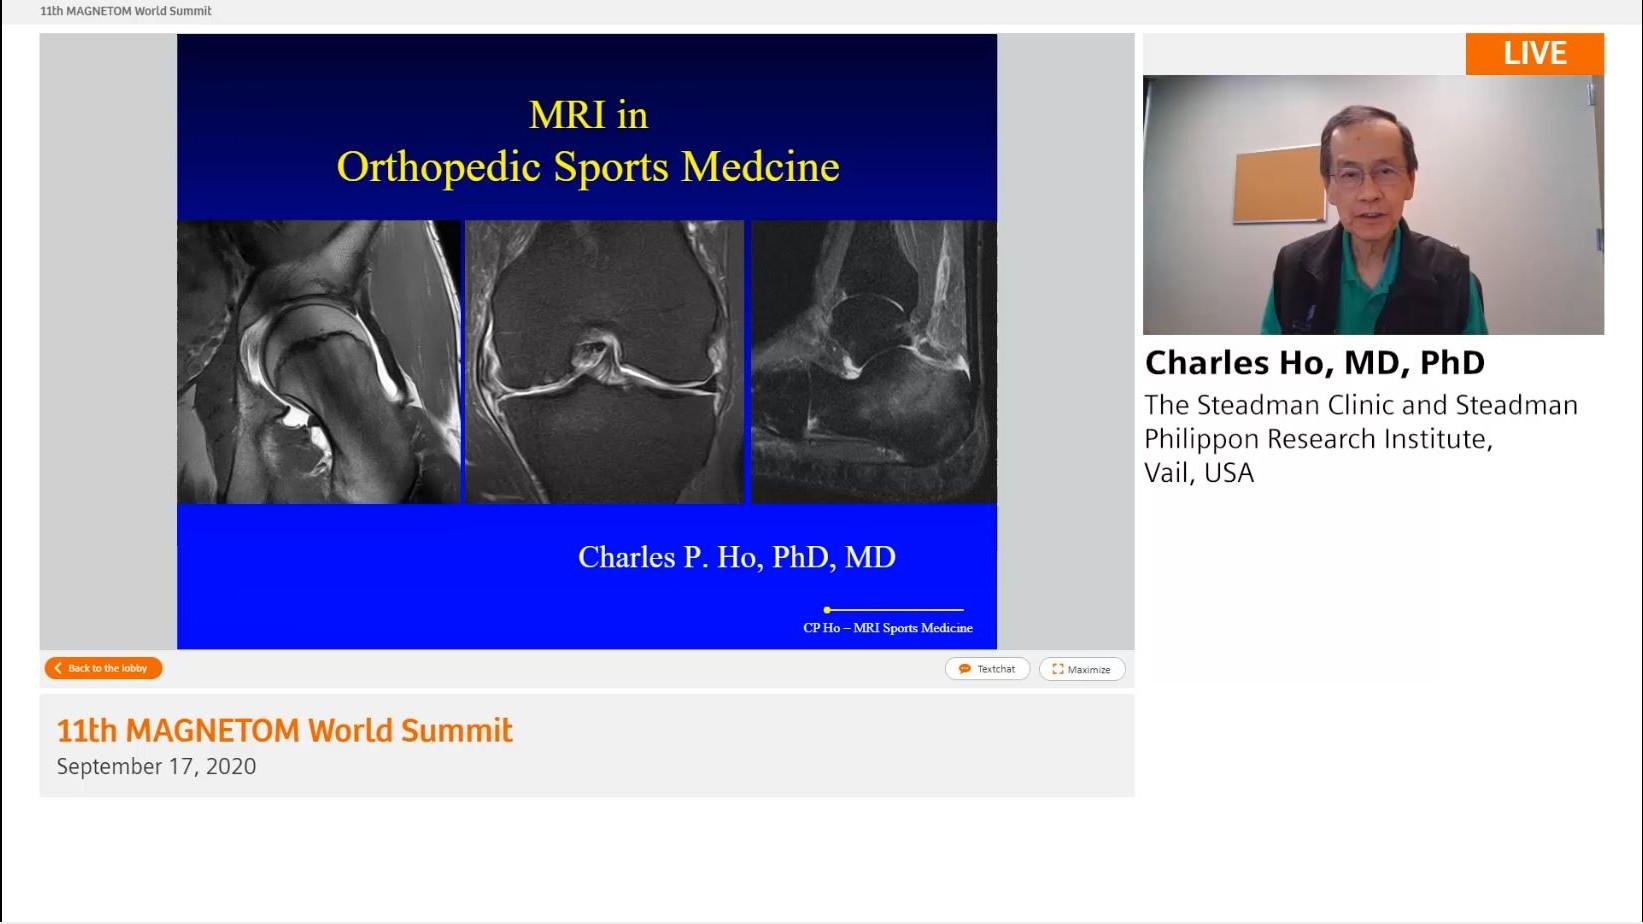 Preview Clinical Talk Charles Ho